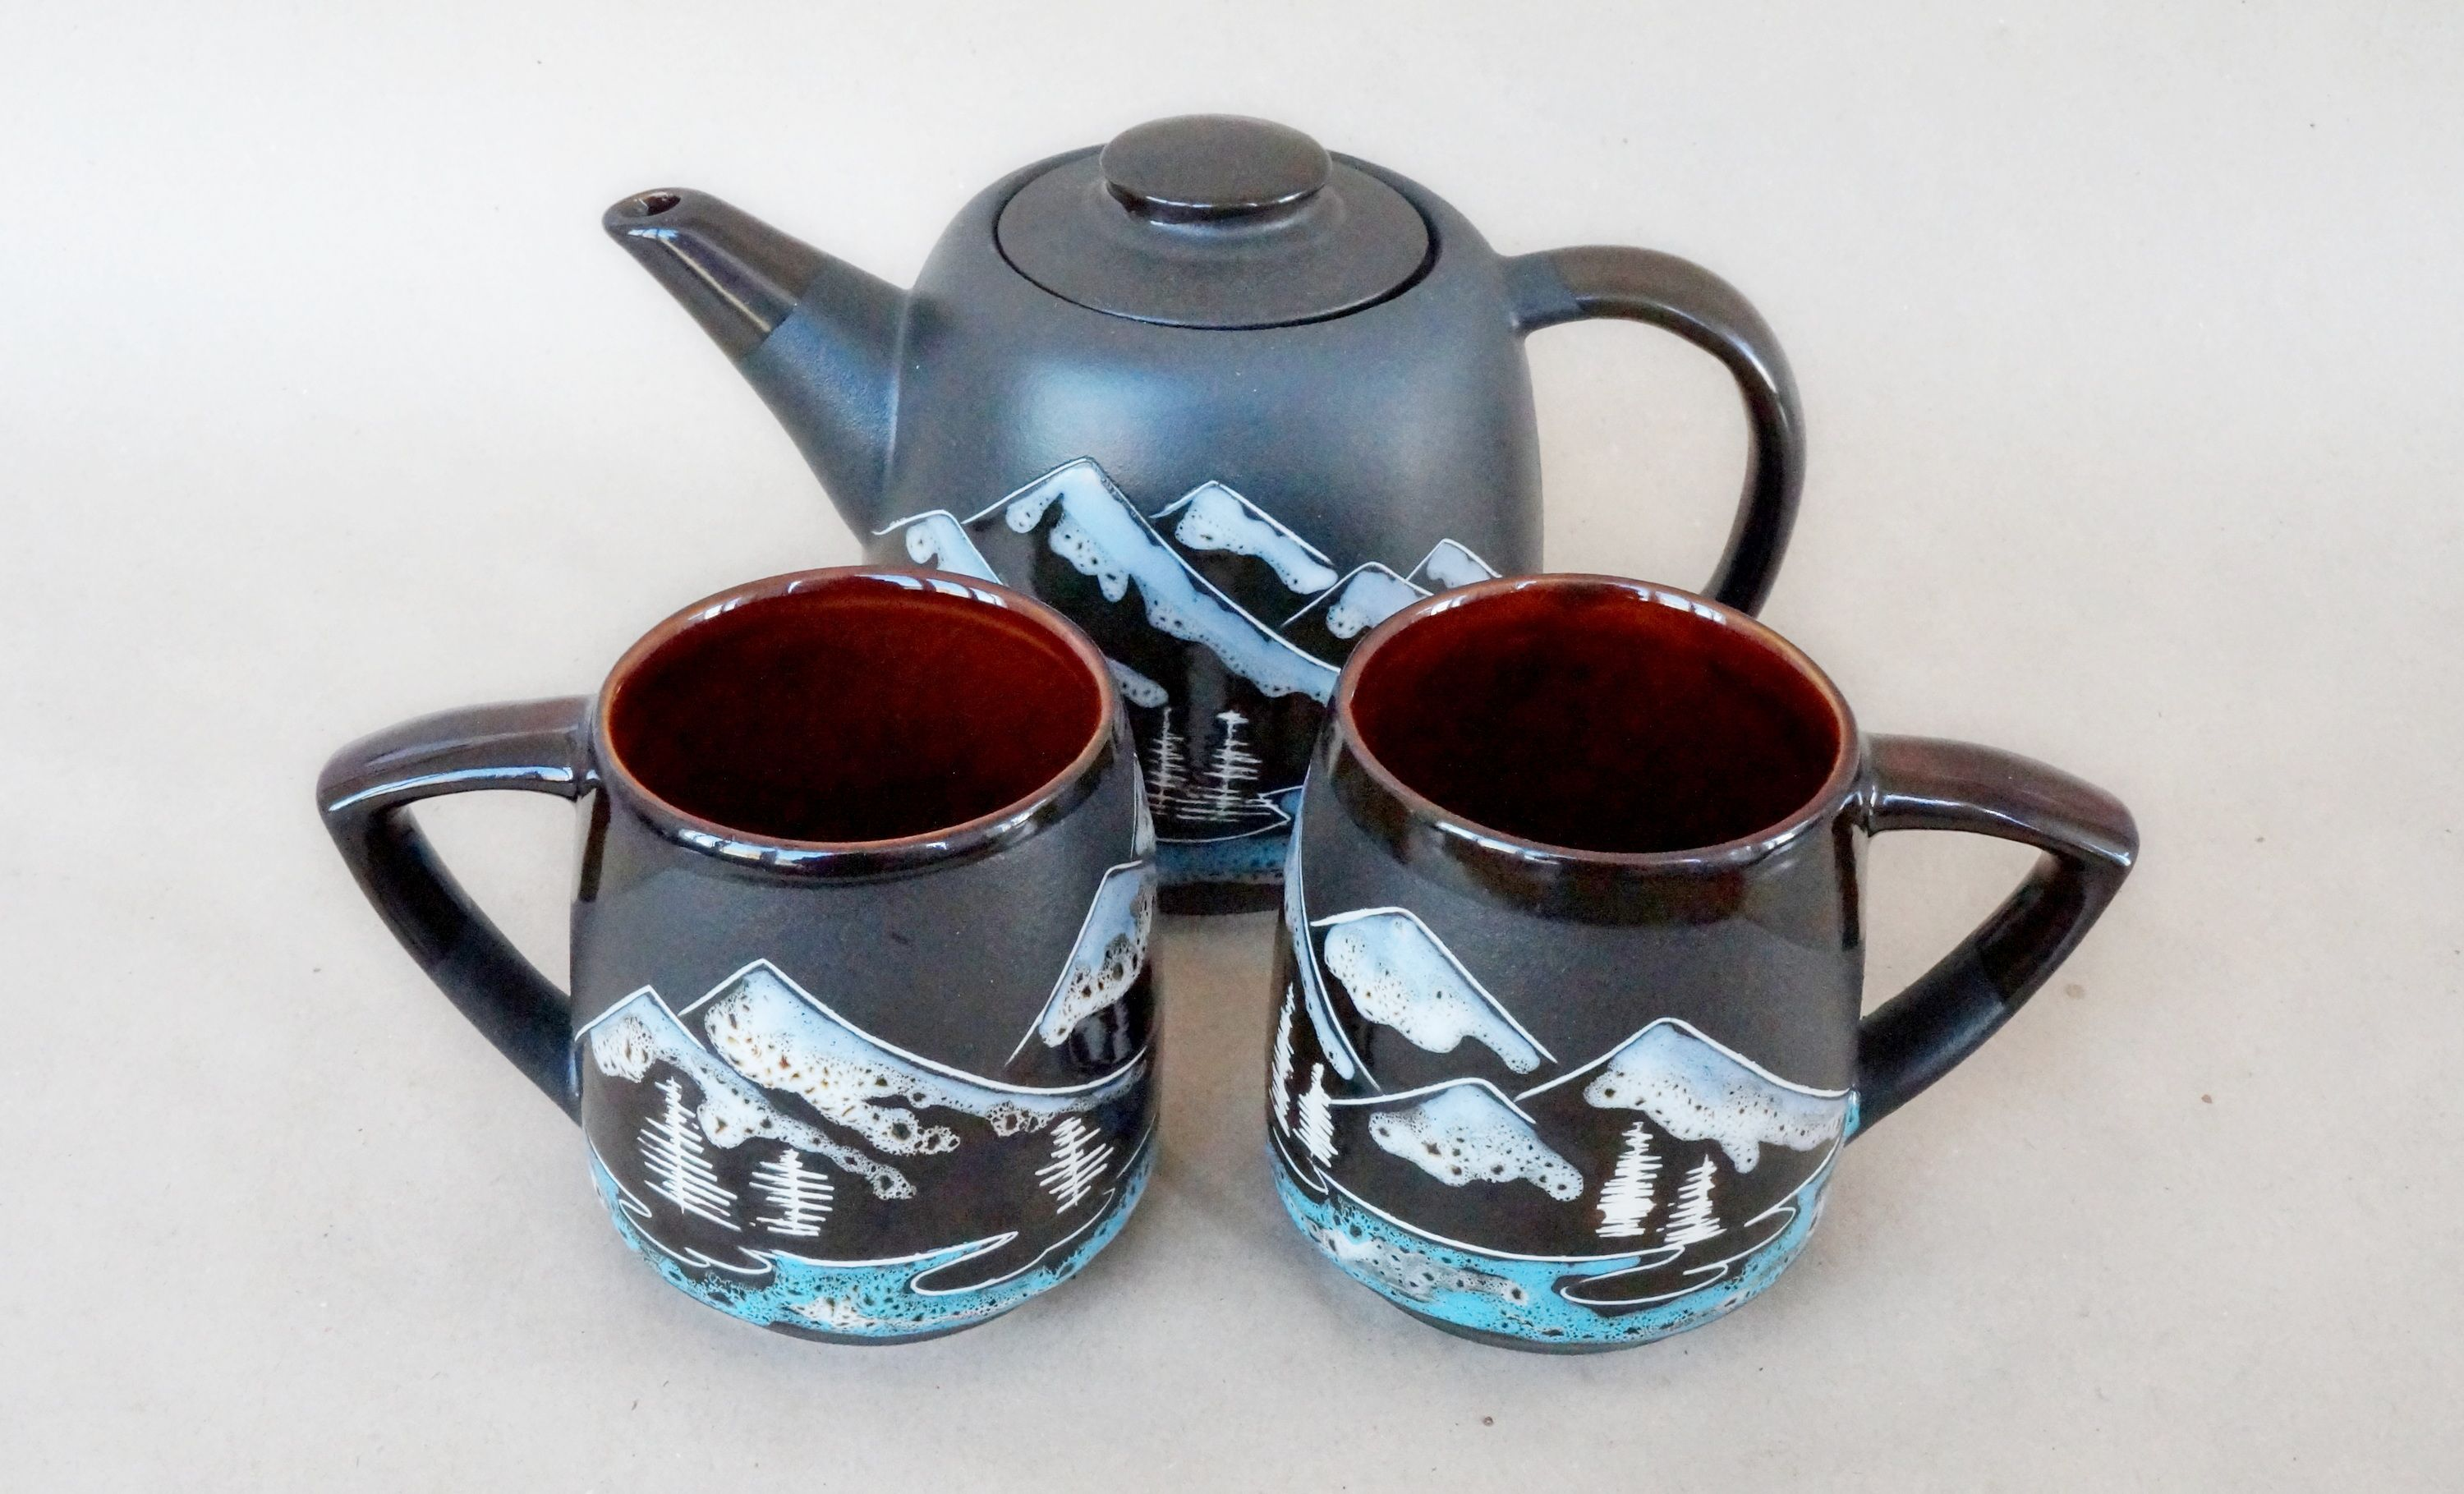 Mountain tea set ceramic #ceramicteapots Mountain ceramic tea set handpainted teapot and two mug ceramic 14oz #mountains #teapot #mugceramic #tealovergift